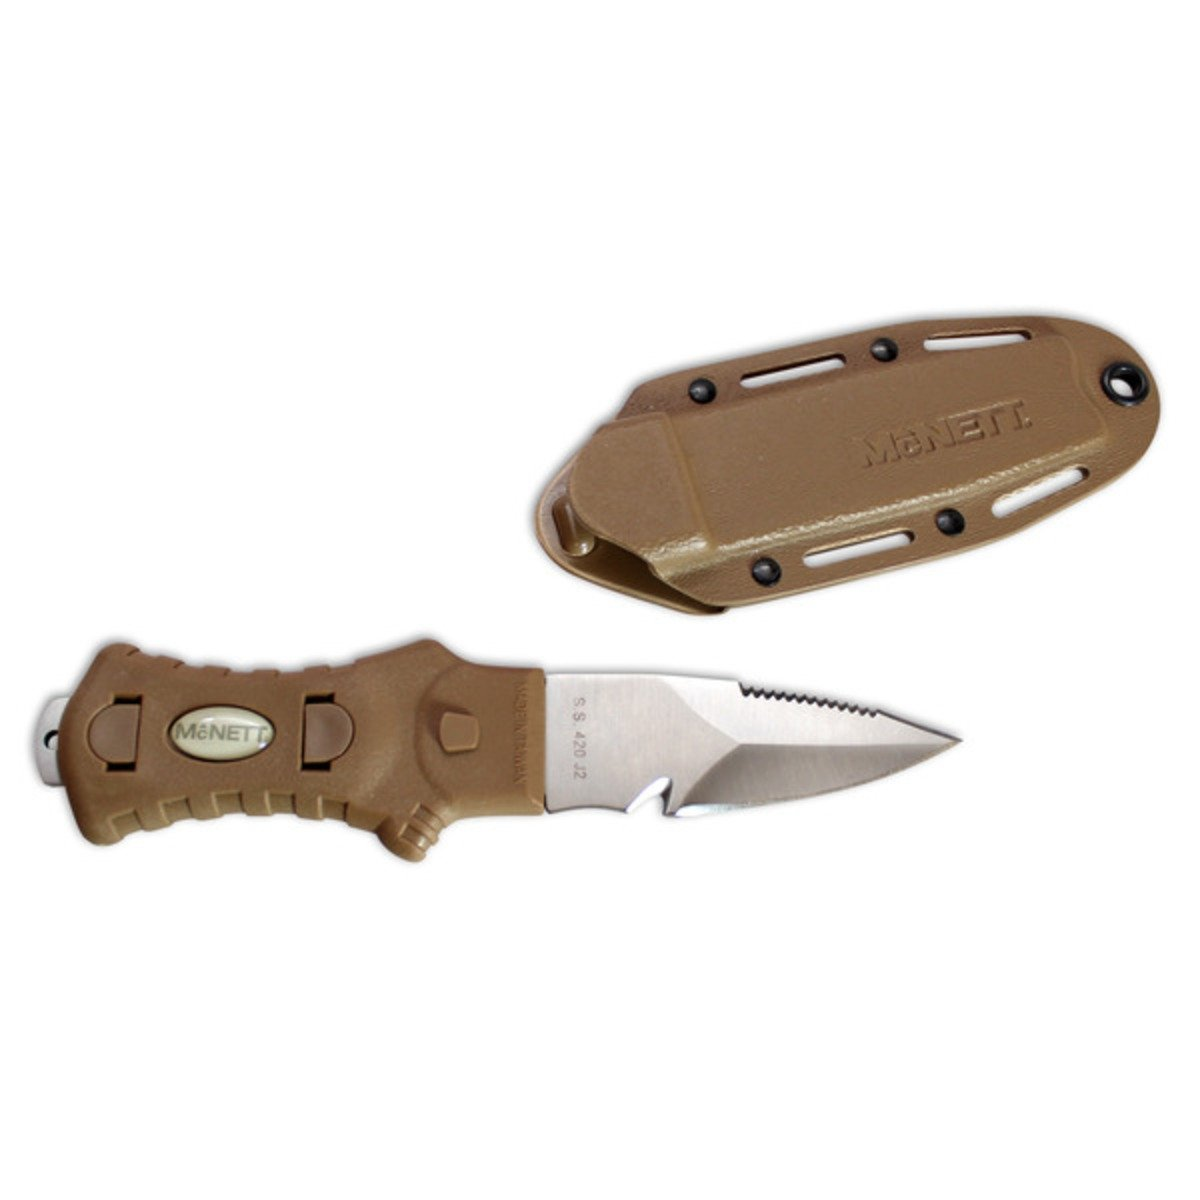 McNett Tactical Fixed Blade Samish Knife with Sheath